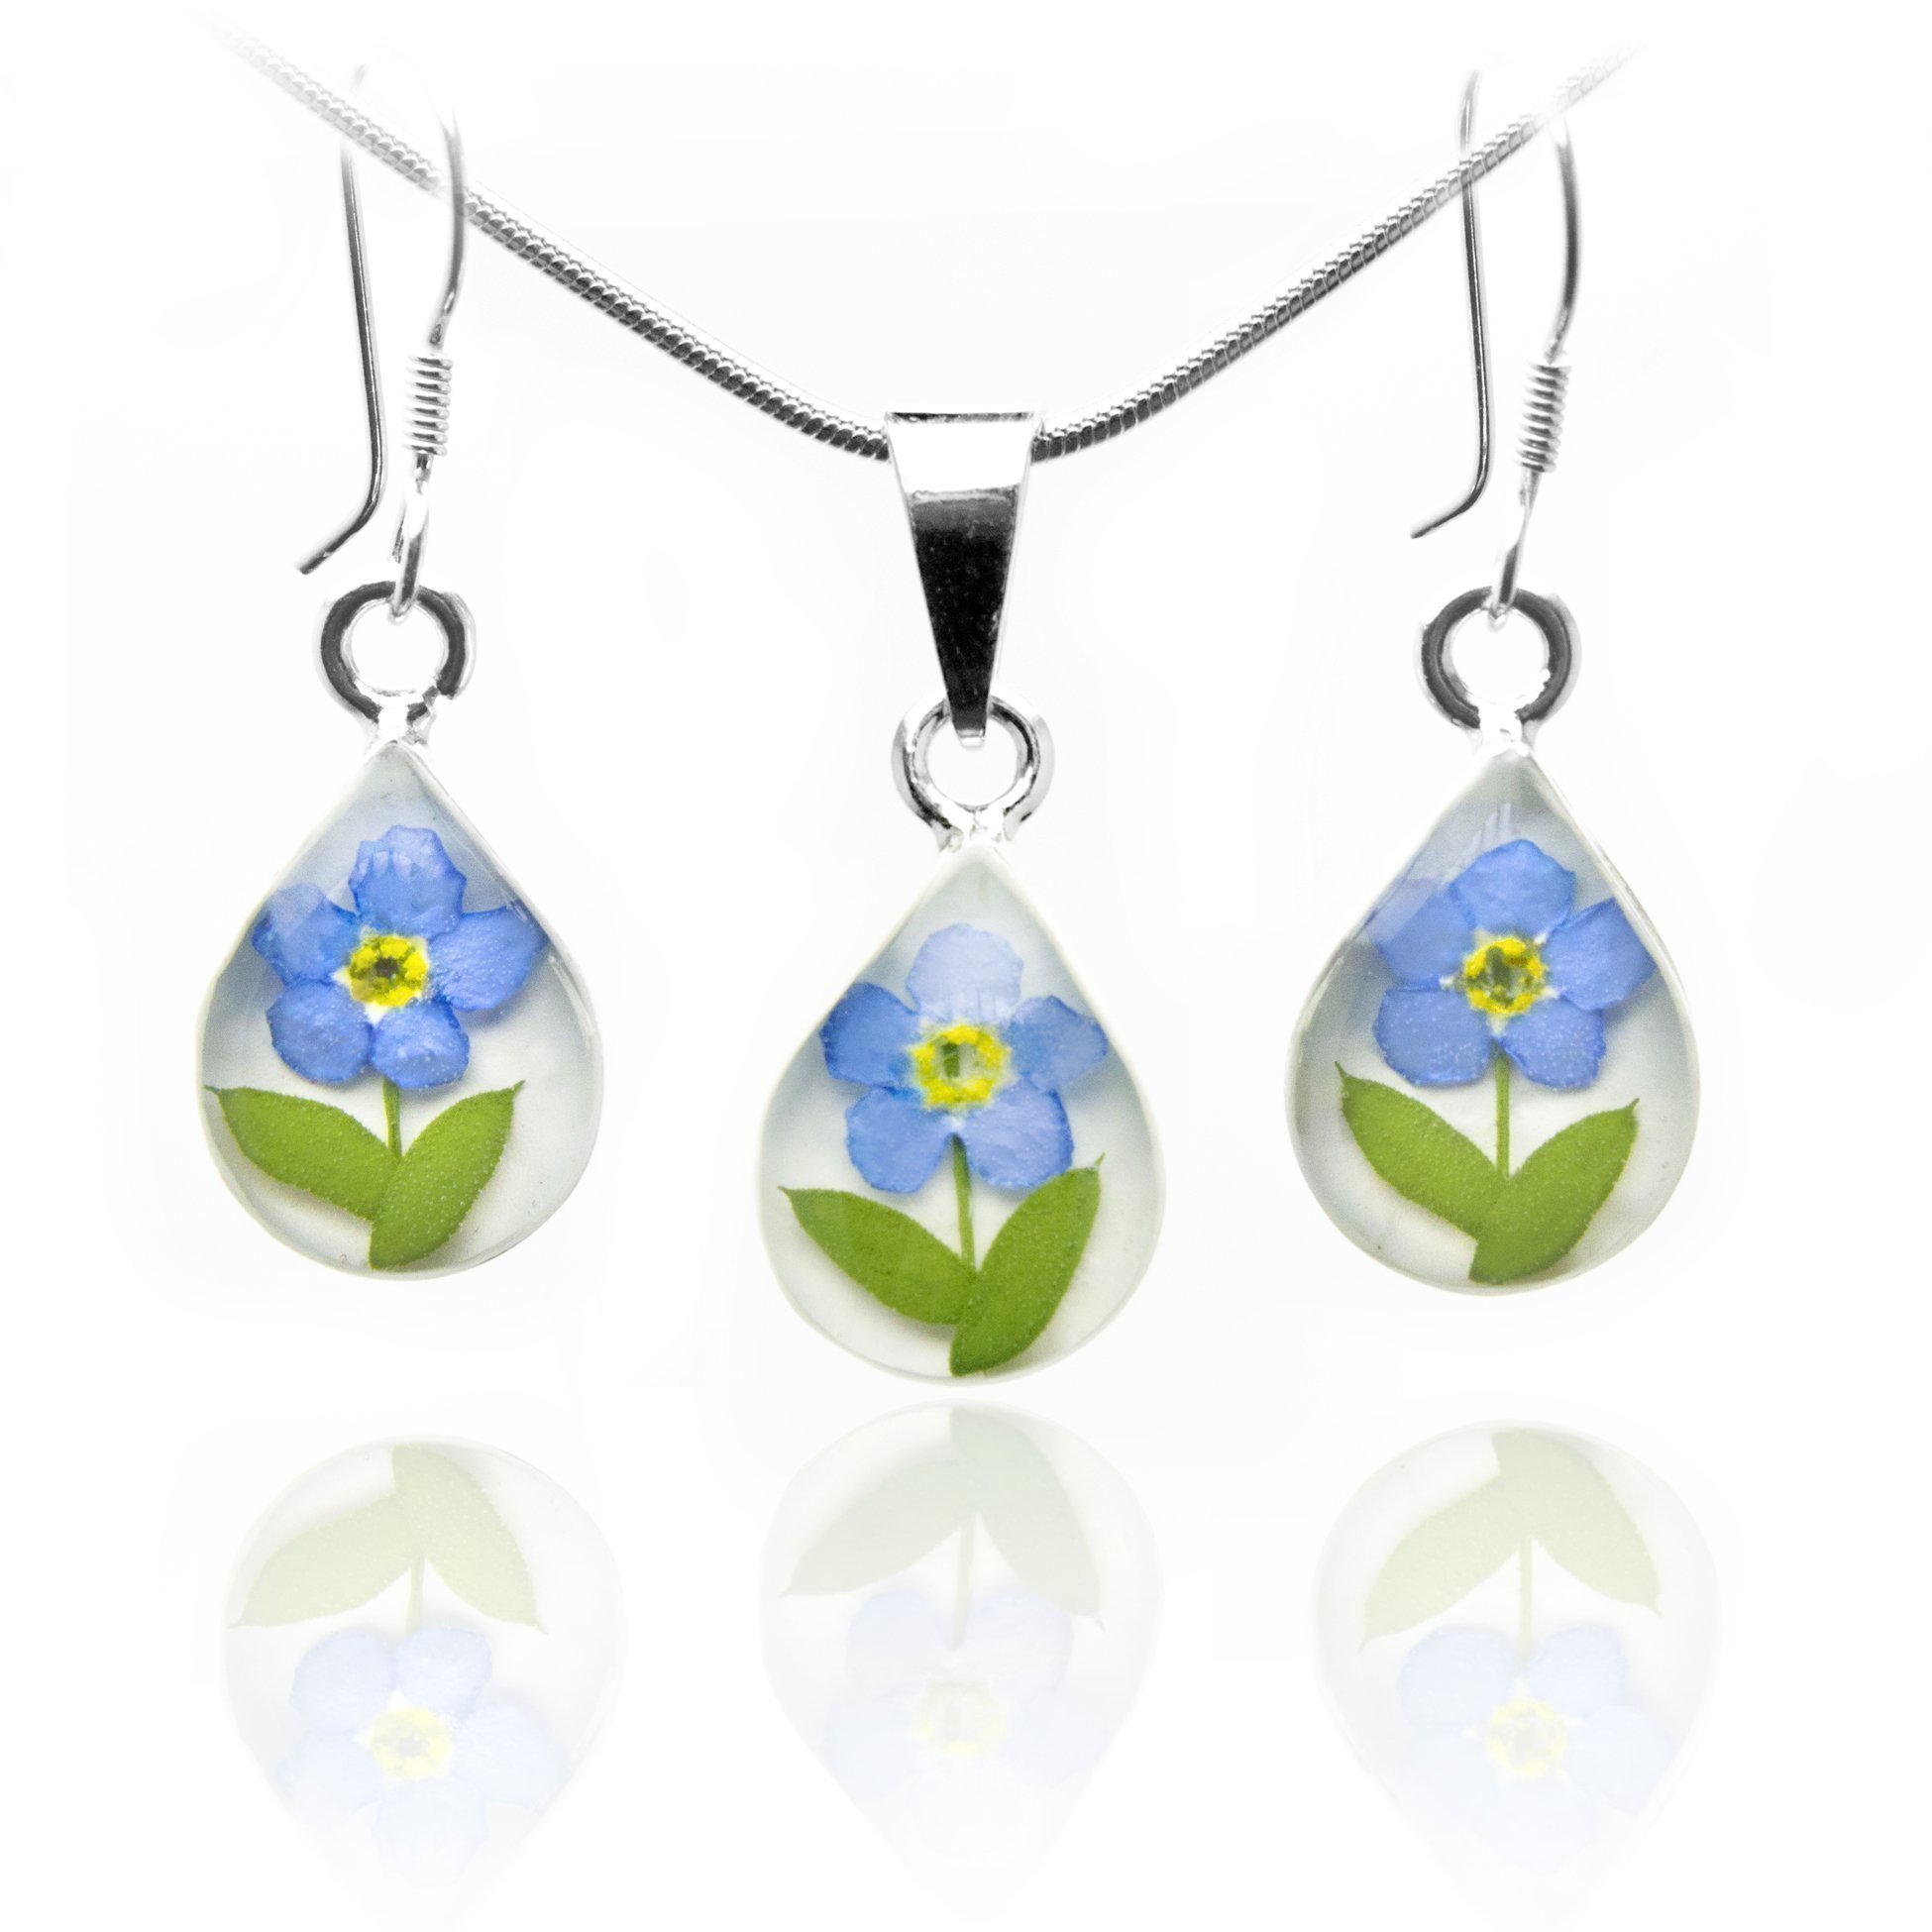 TAMI Floral Jewelry Sterling Silver Teardrops Earrings and Necklace with Real Pressed Natural Forget me not Flowers (Symbol of Eternal Love) and 17.7 in 925 Mouse Tail Chain